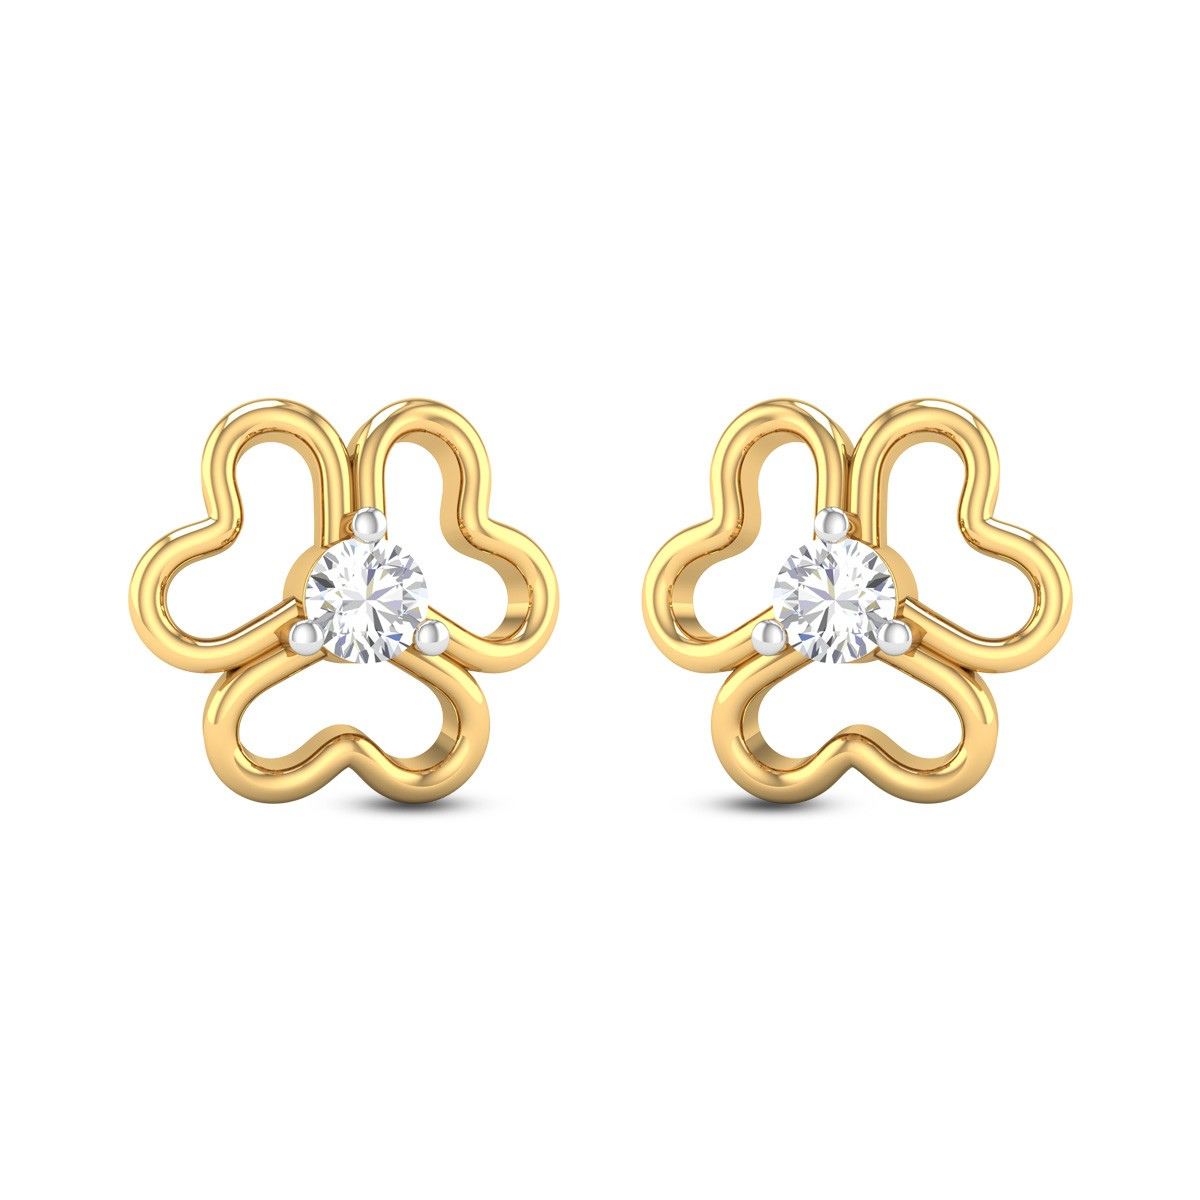 Naolin Diamond Earrings